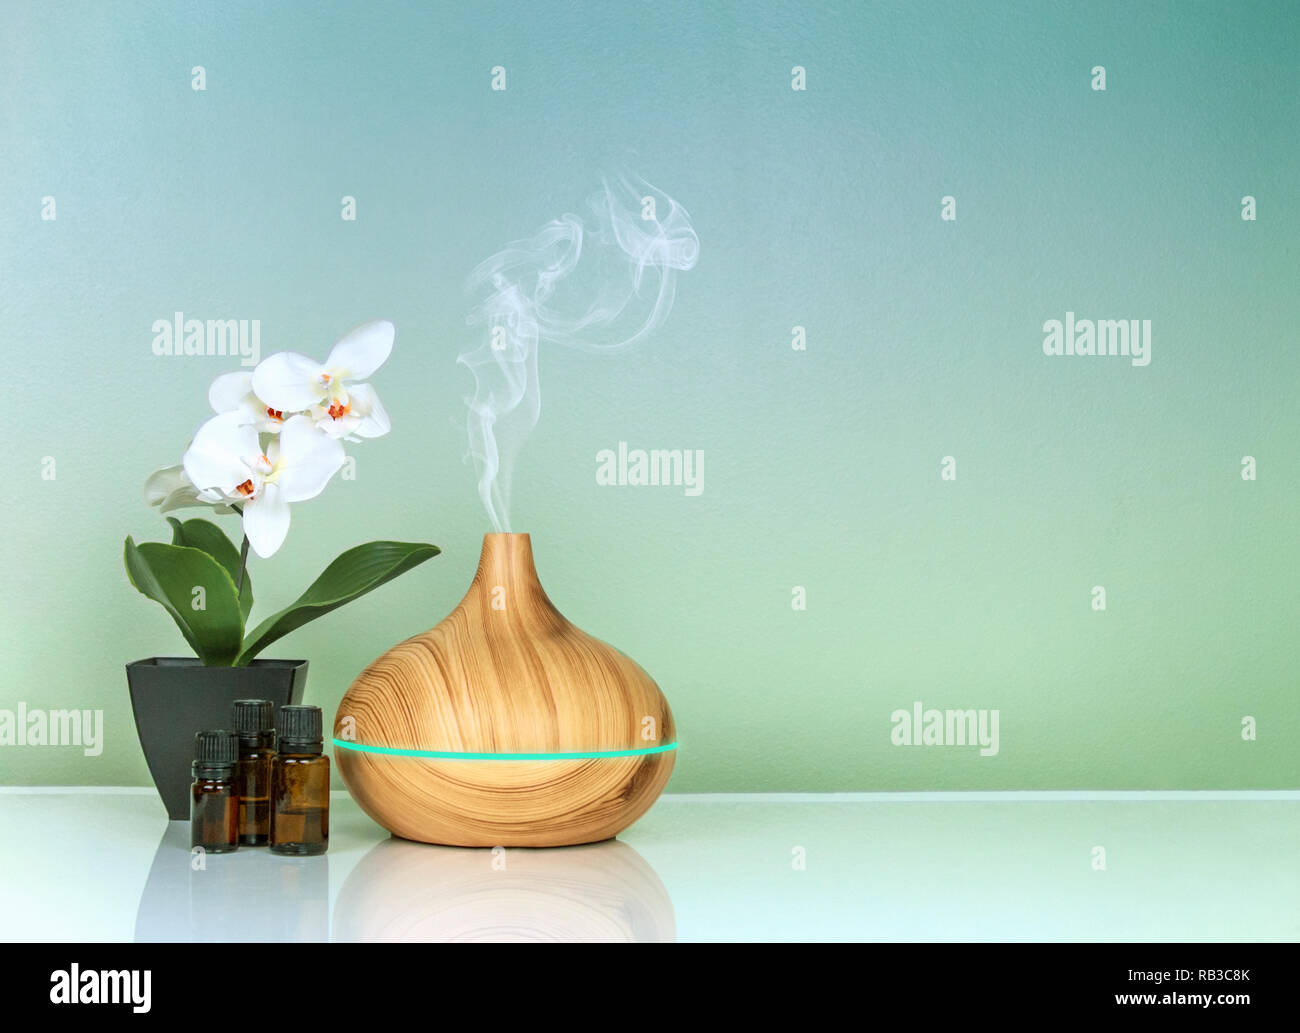 Electric Essential oils Aroma diffuser, oil bottles and flowers on green gradient surface with reflection. - Stock Image